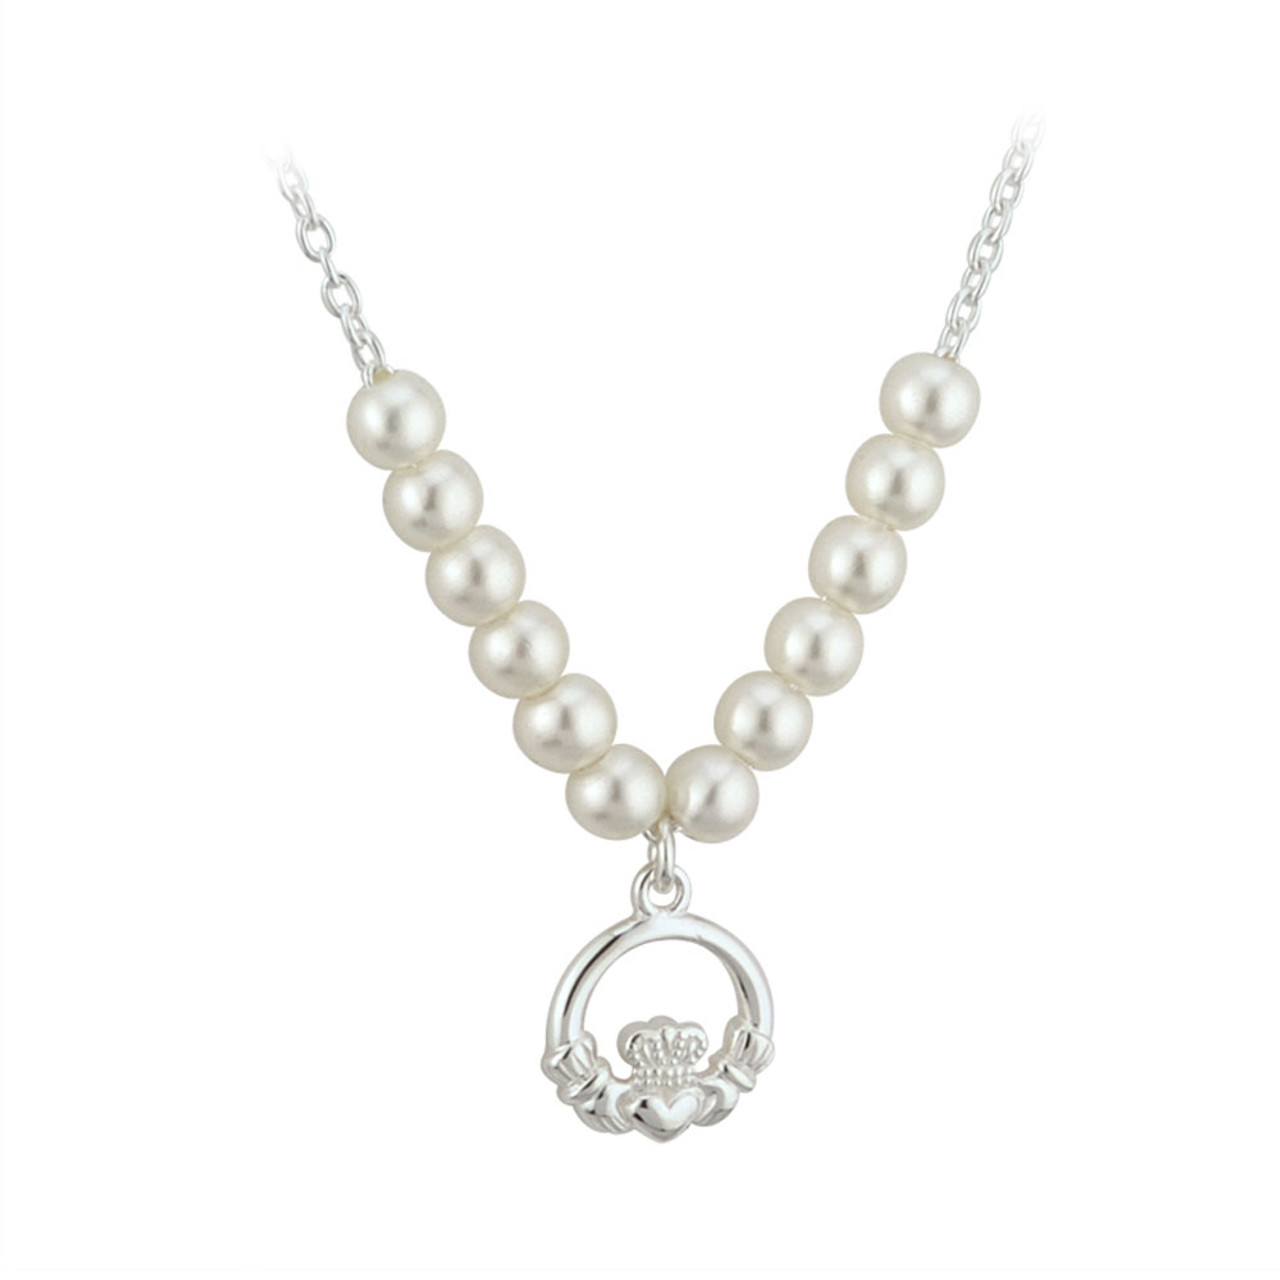 Child's Silver Plated Pearl and Claddagh Necklace